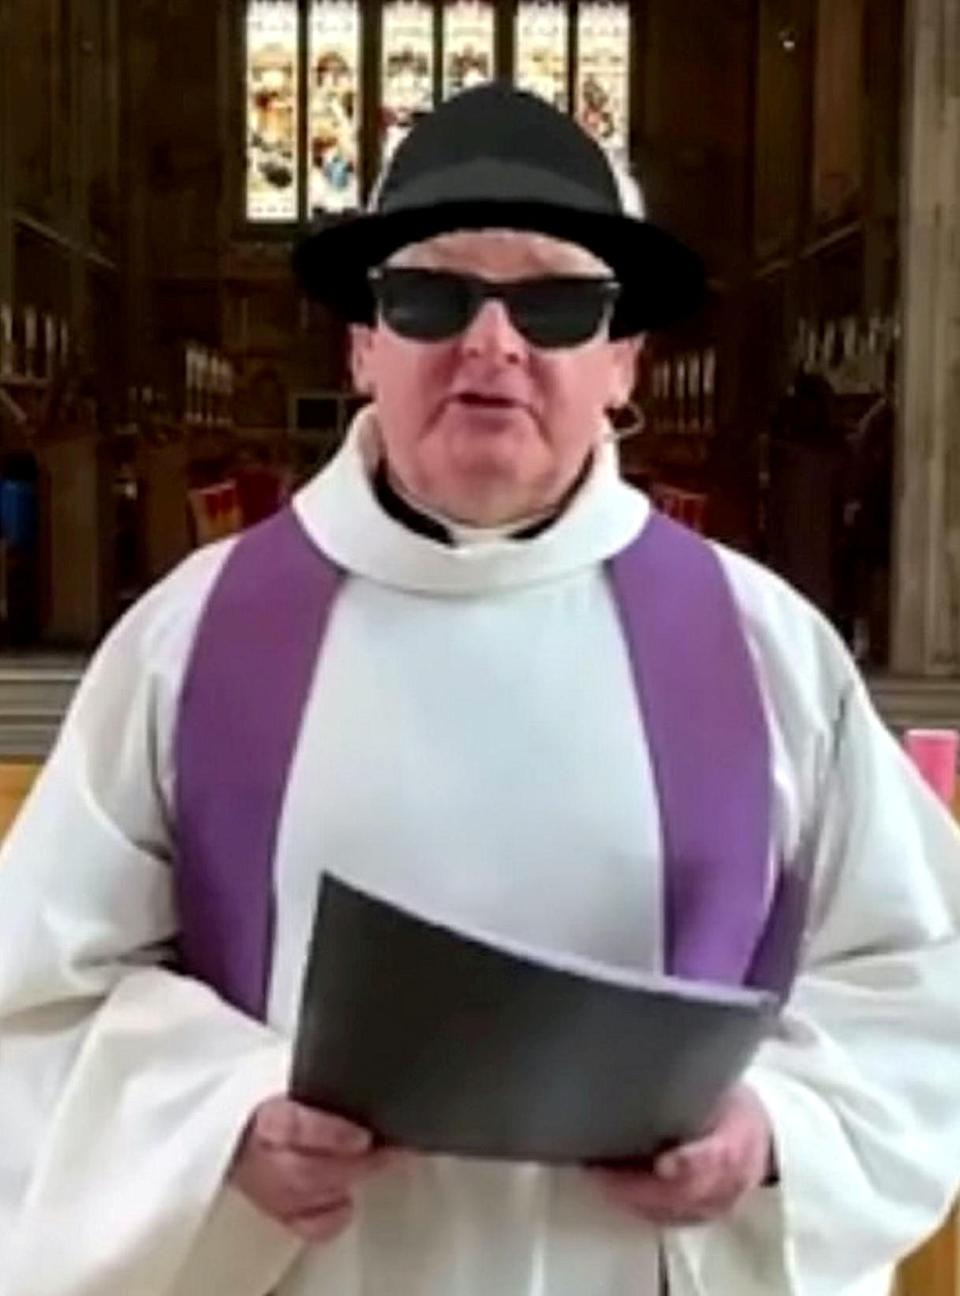 Reverend Vaughan Roberts, 62, conducted a church service with a Blues Brother filter on after a mishap with his Zoom account (swns)